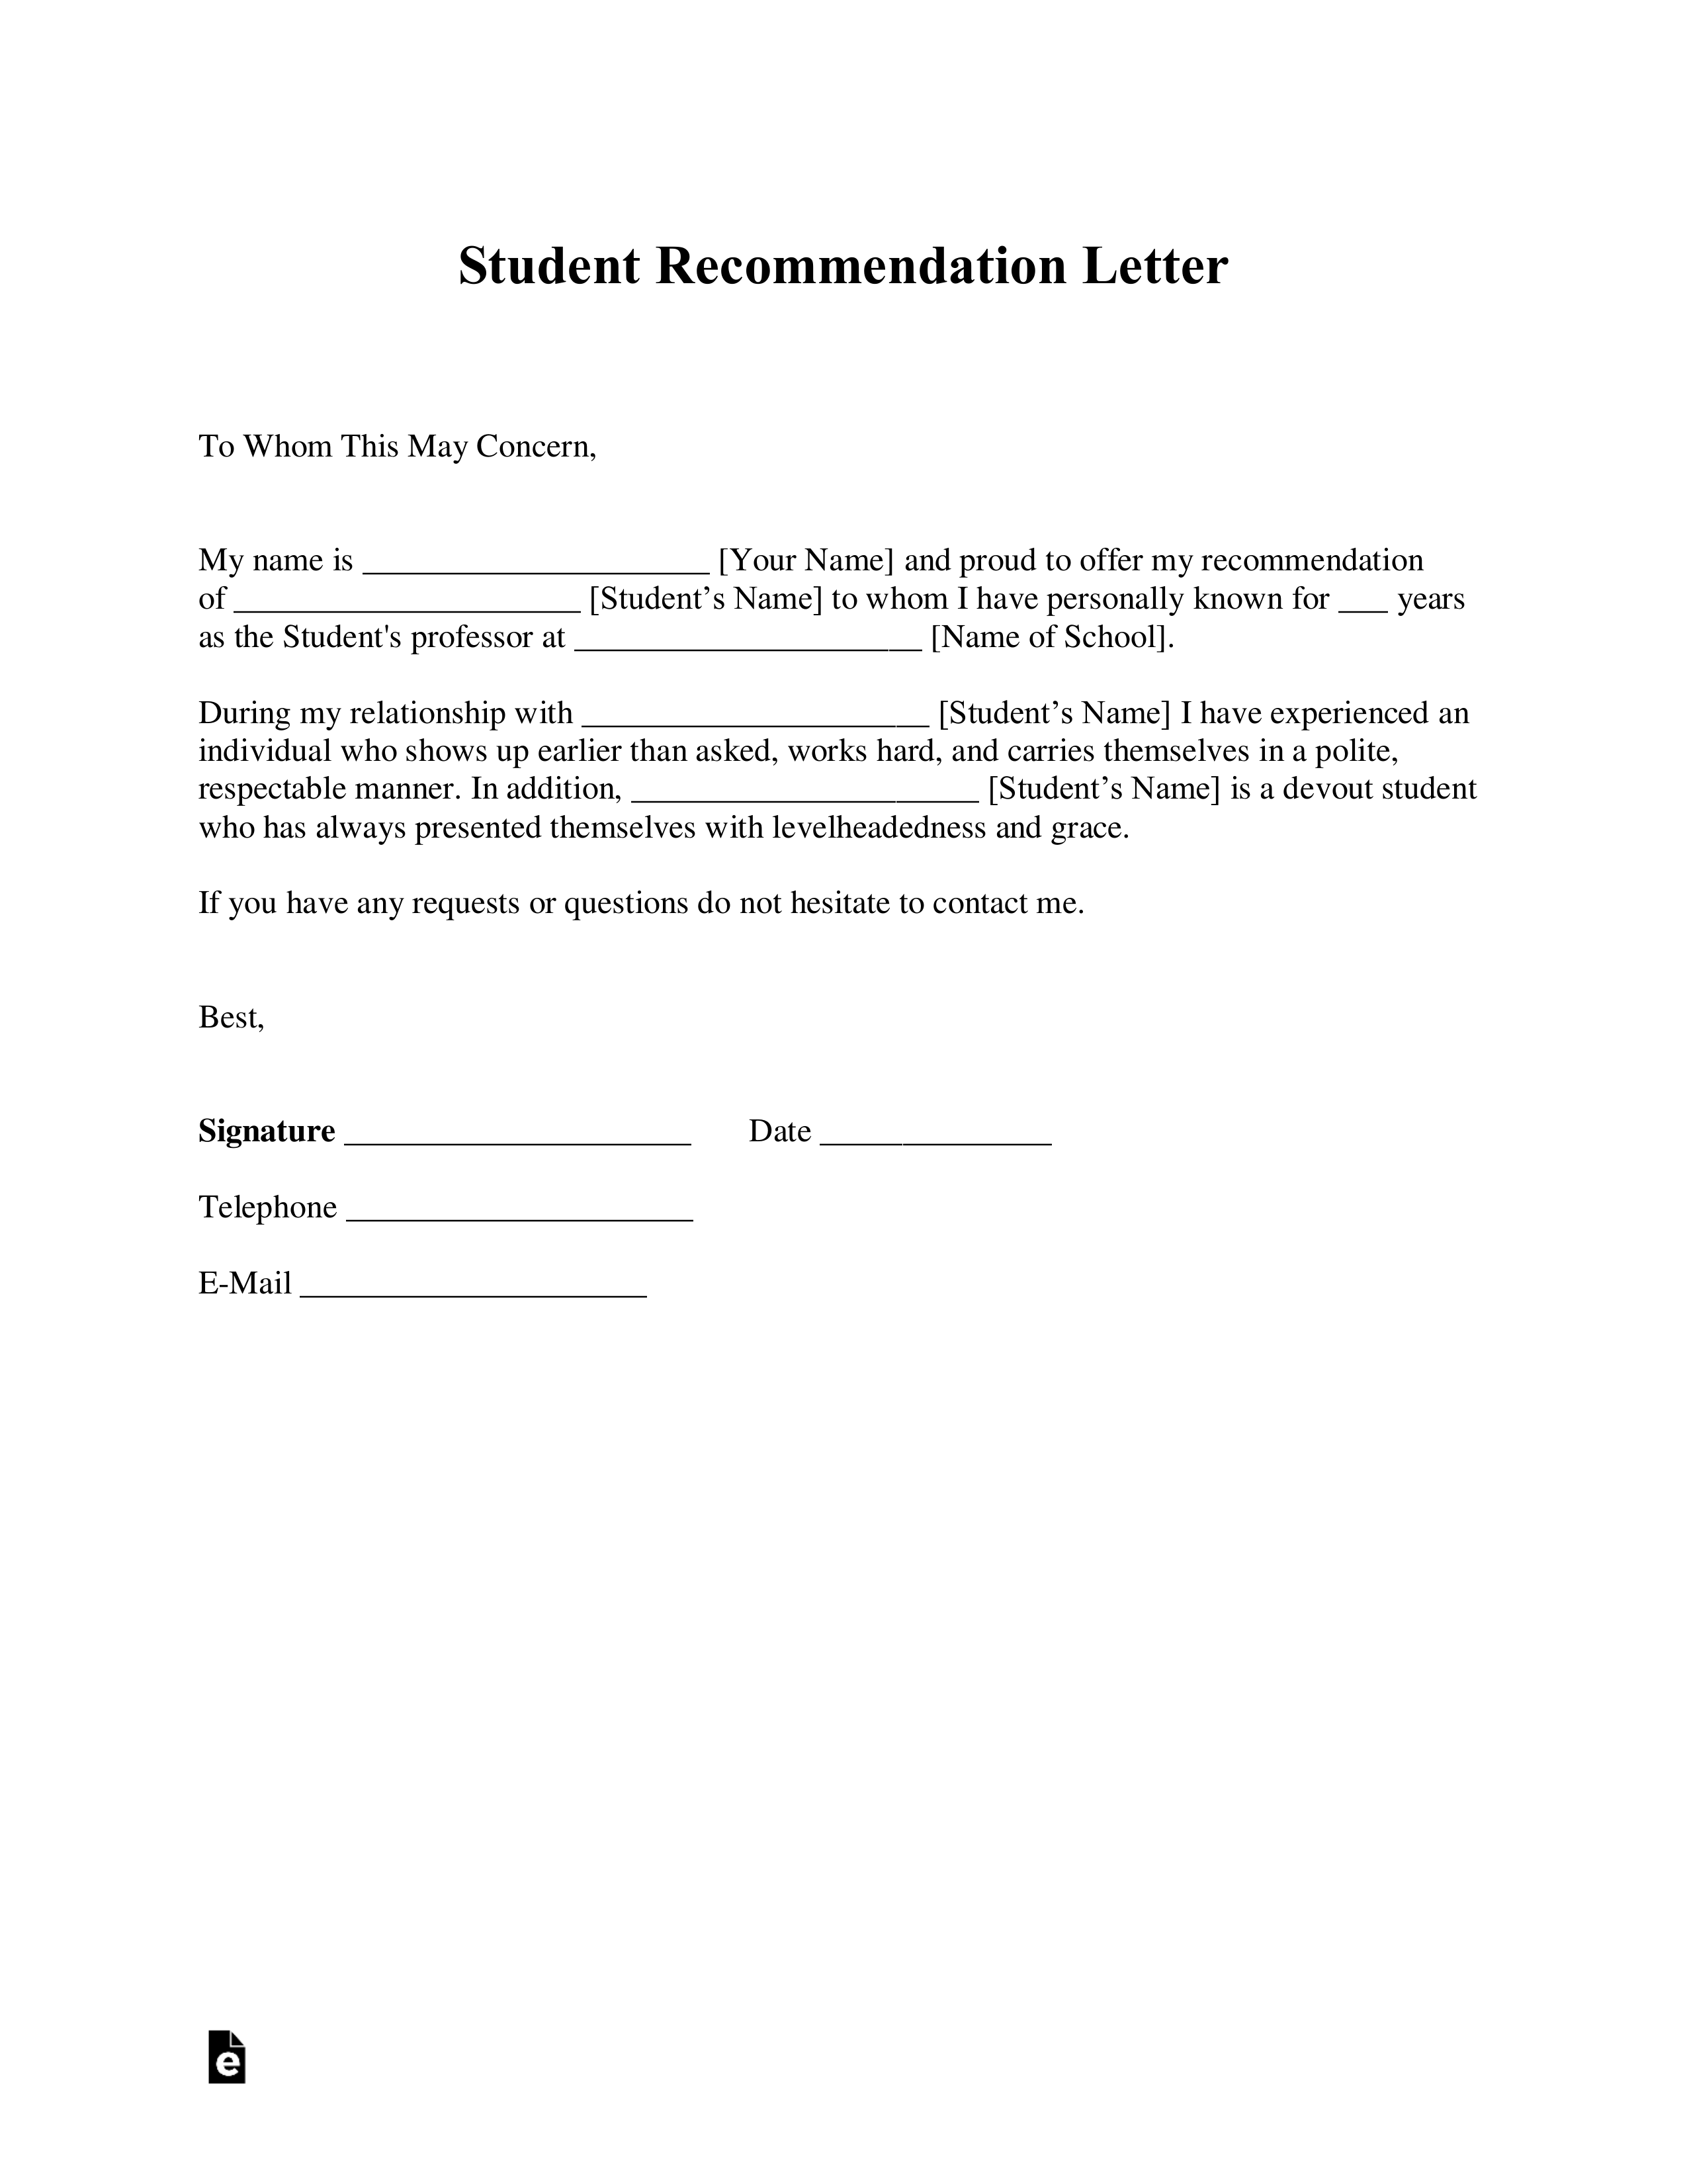 Sample Recommendation Letter For Intern from eforms.com